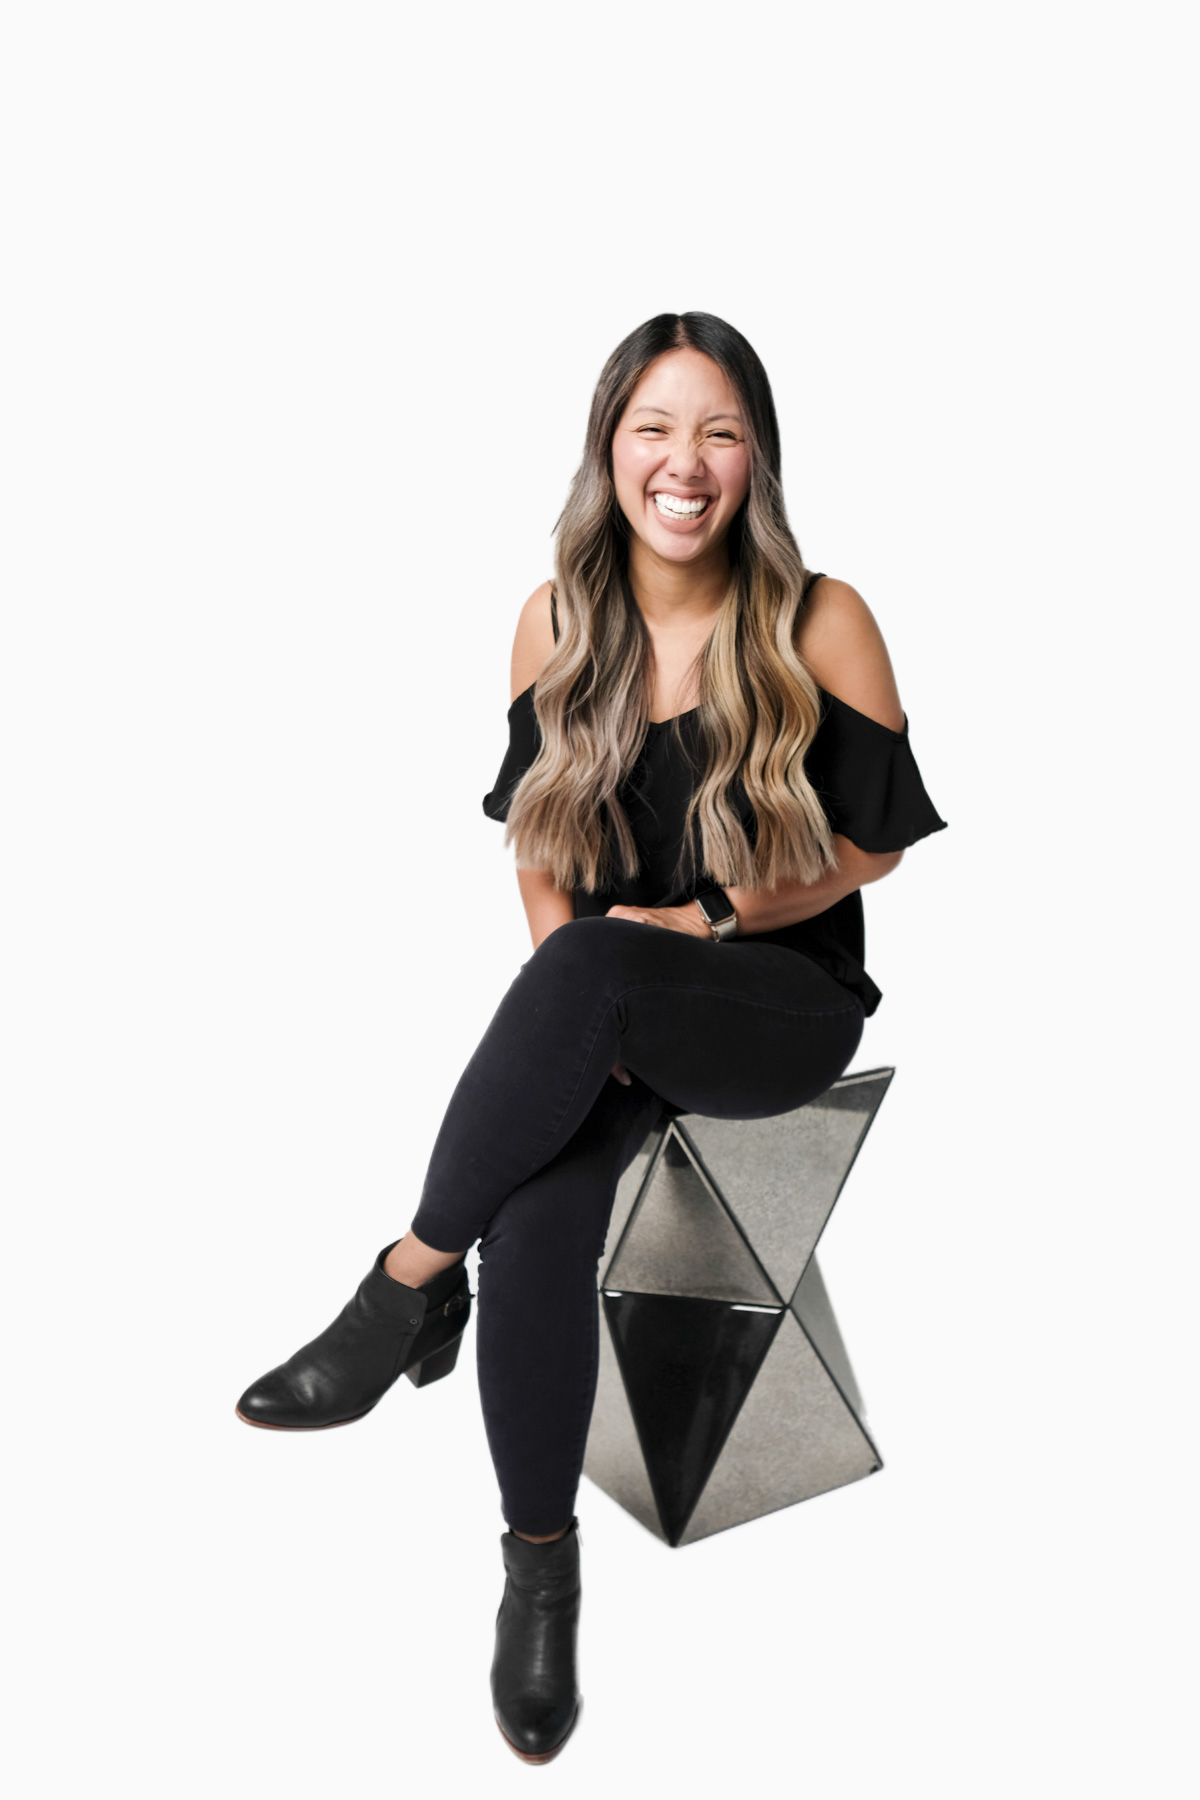 Chrissy Nguyen: Senior Paralegal